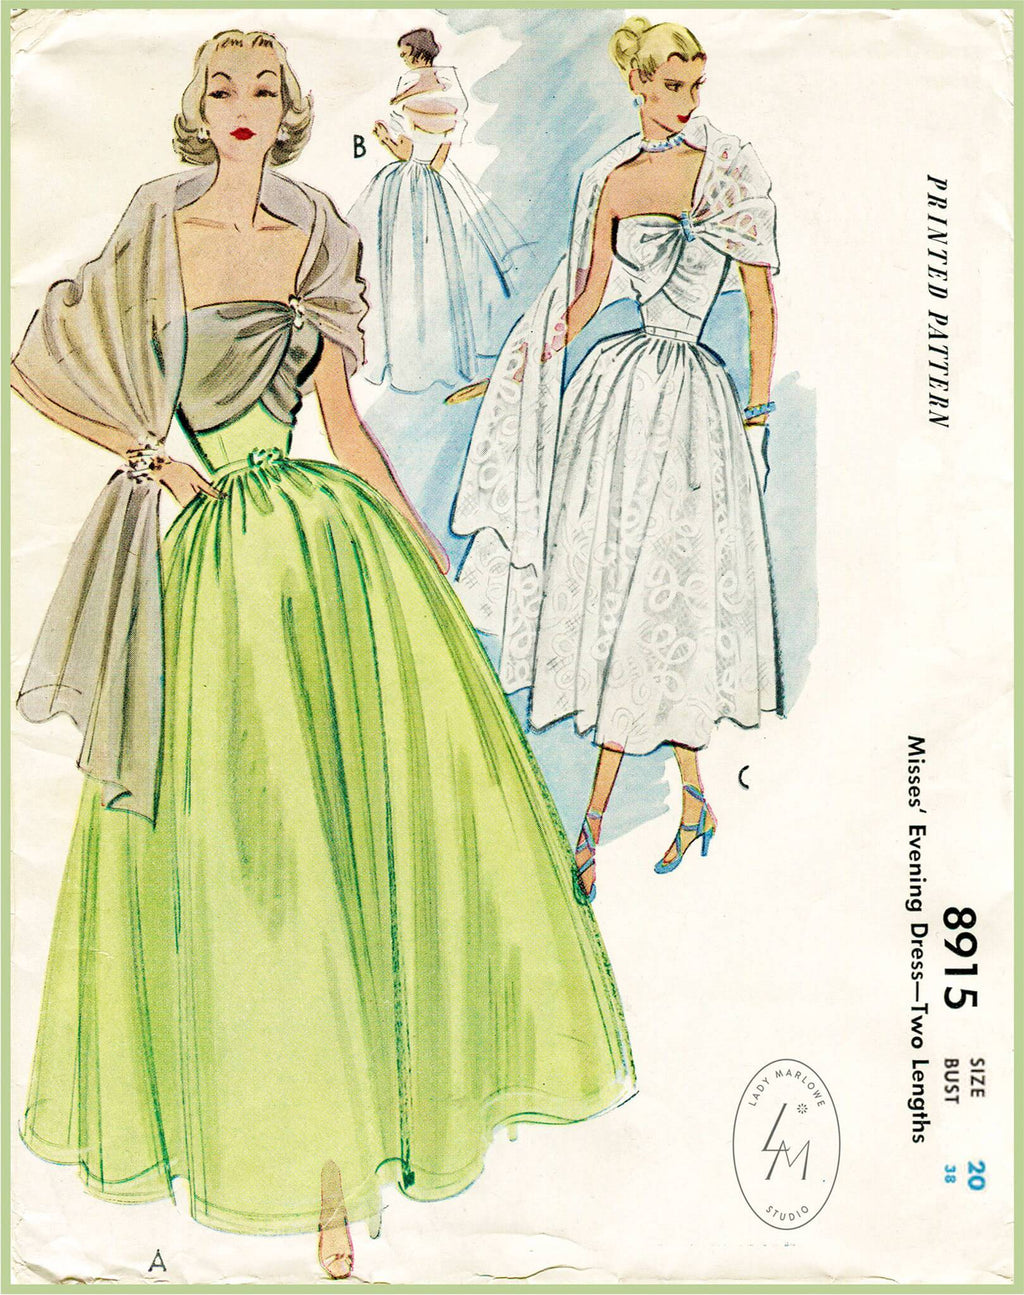 McCall 8915 1950s vintage sewing pattern 1950 50s evening gown